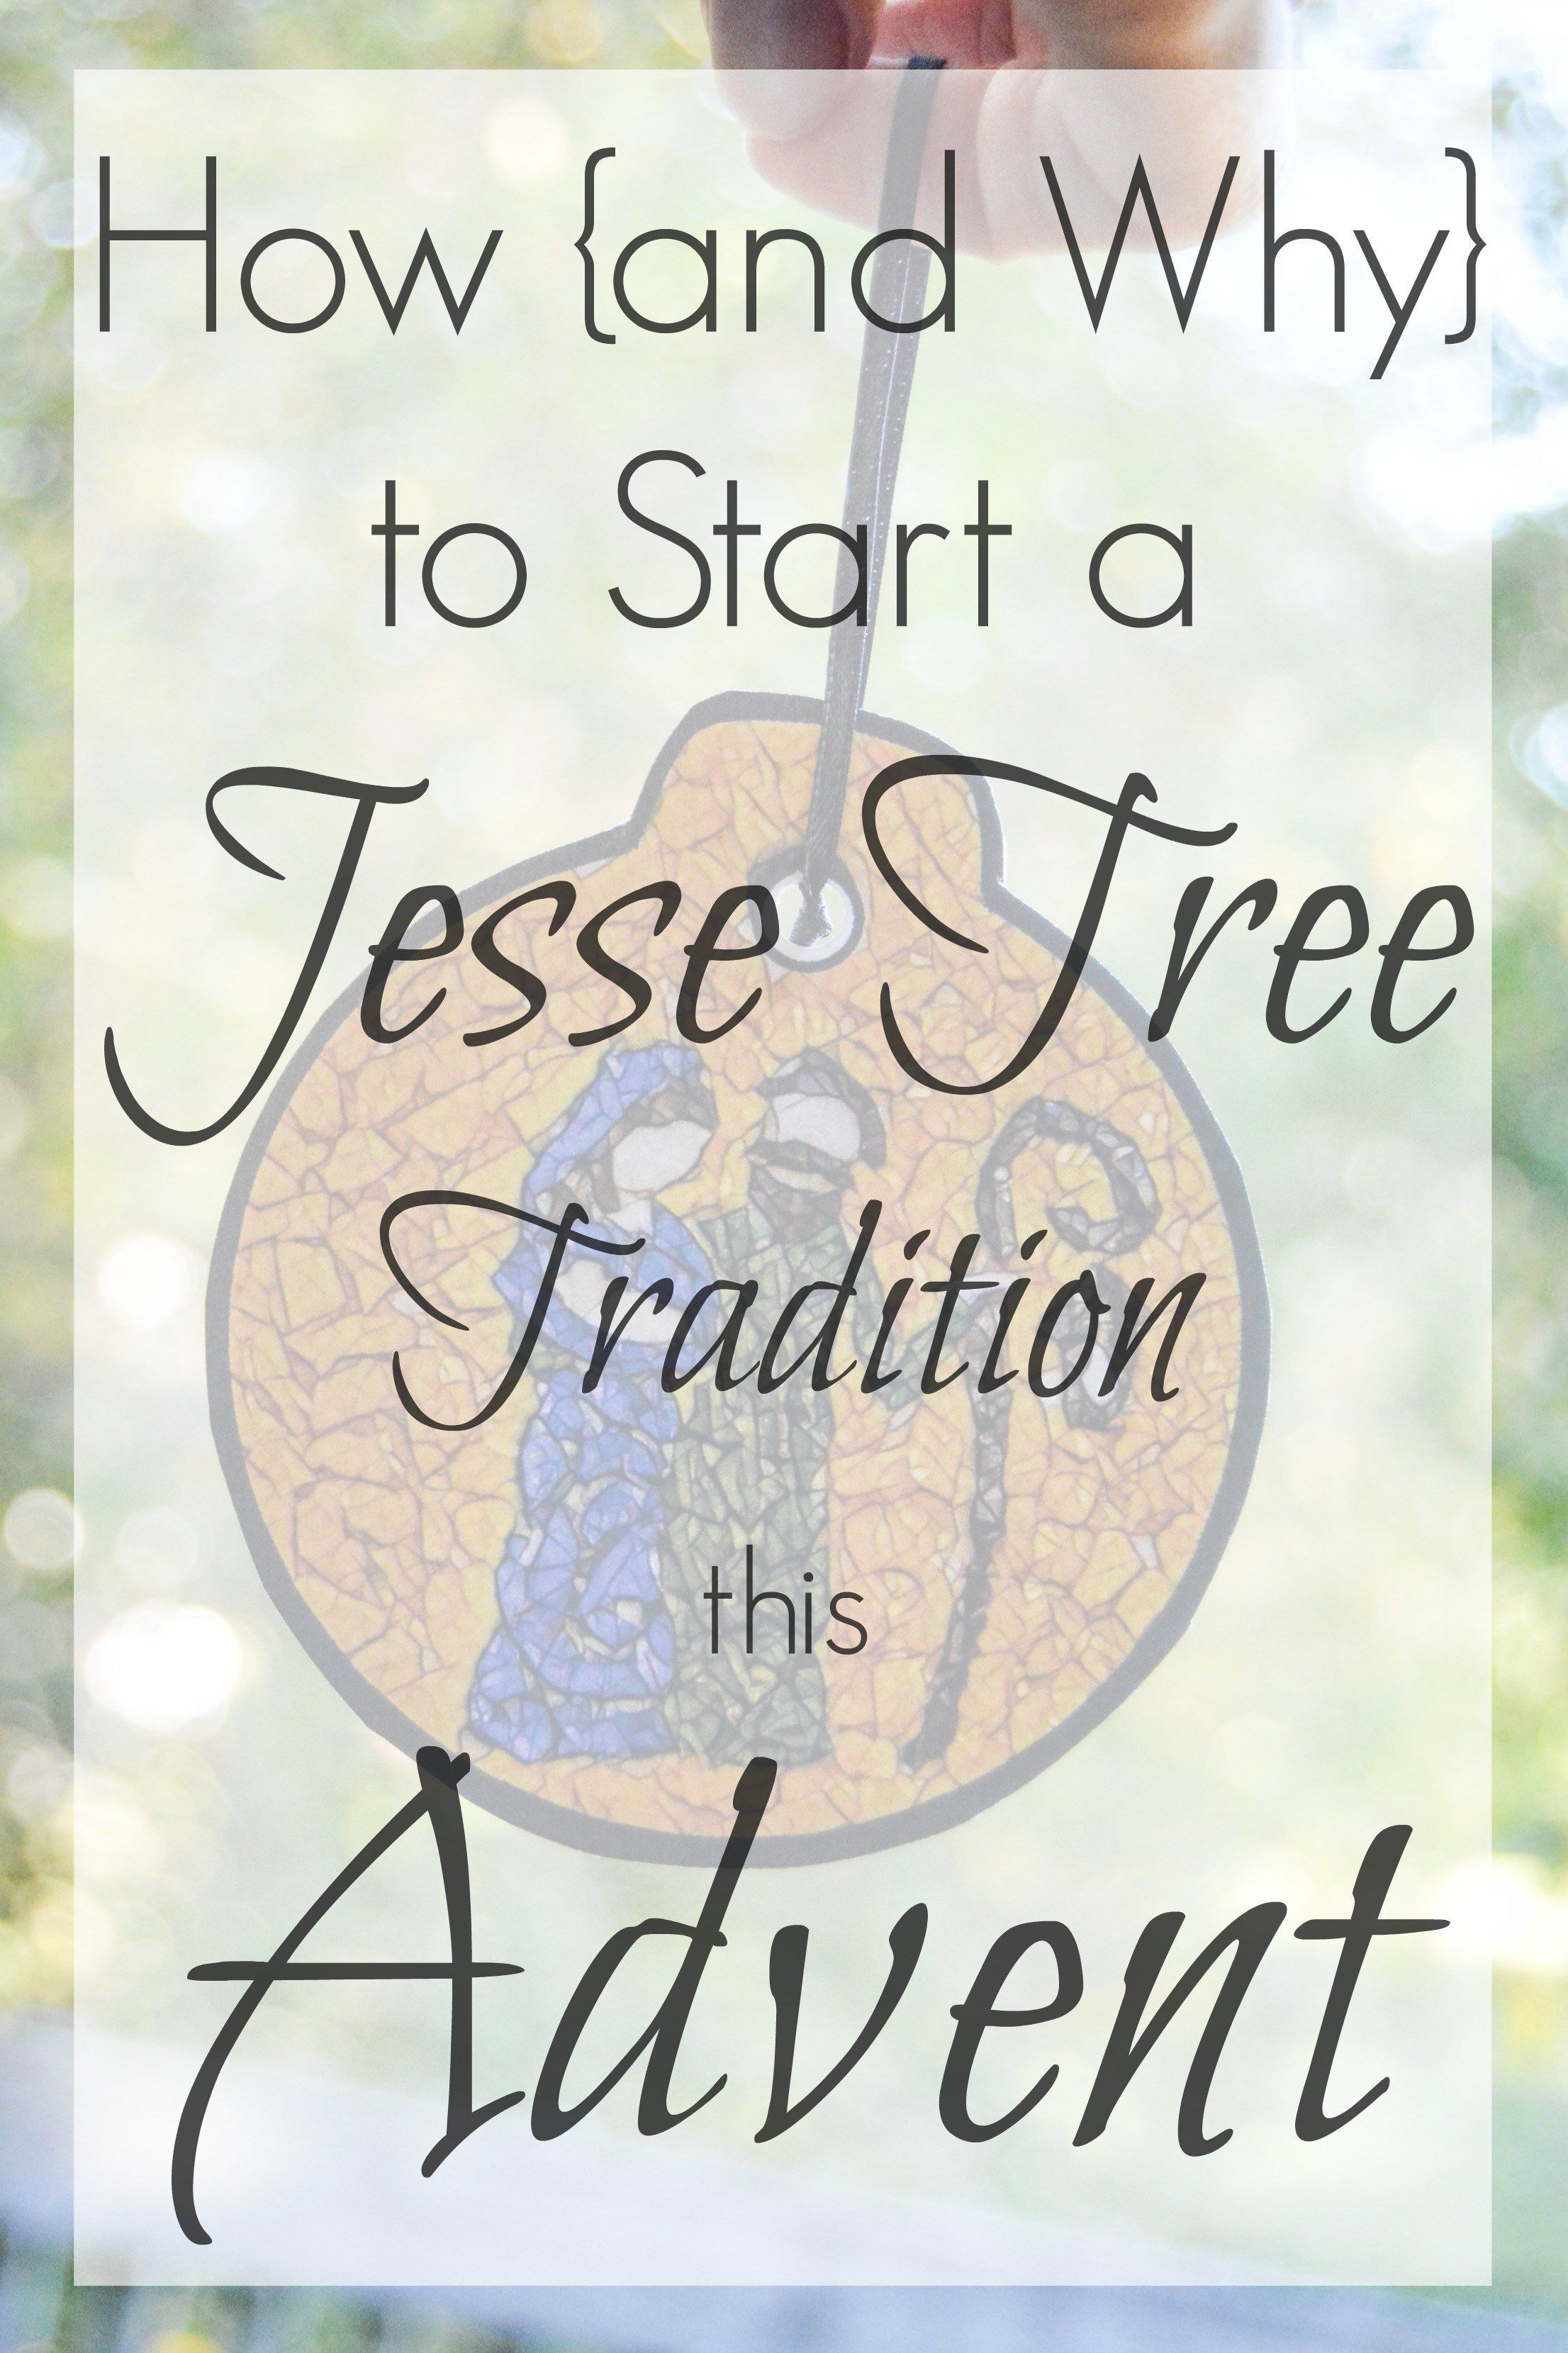 How And Why To Start A Jesse Tree Tradition This Advent